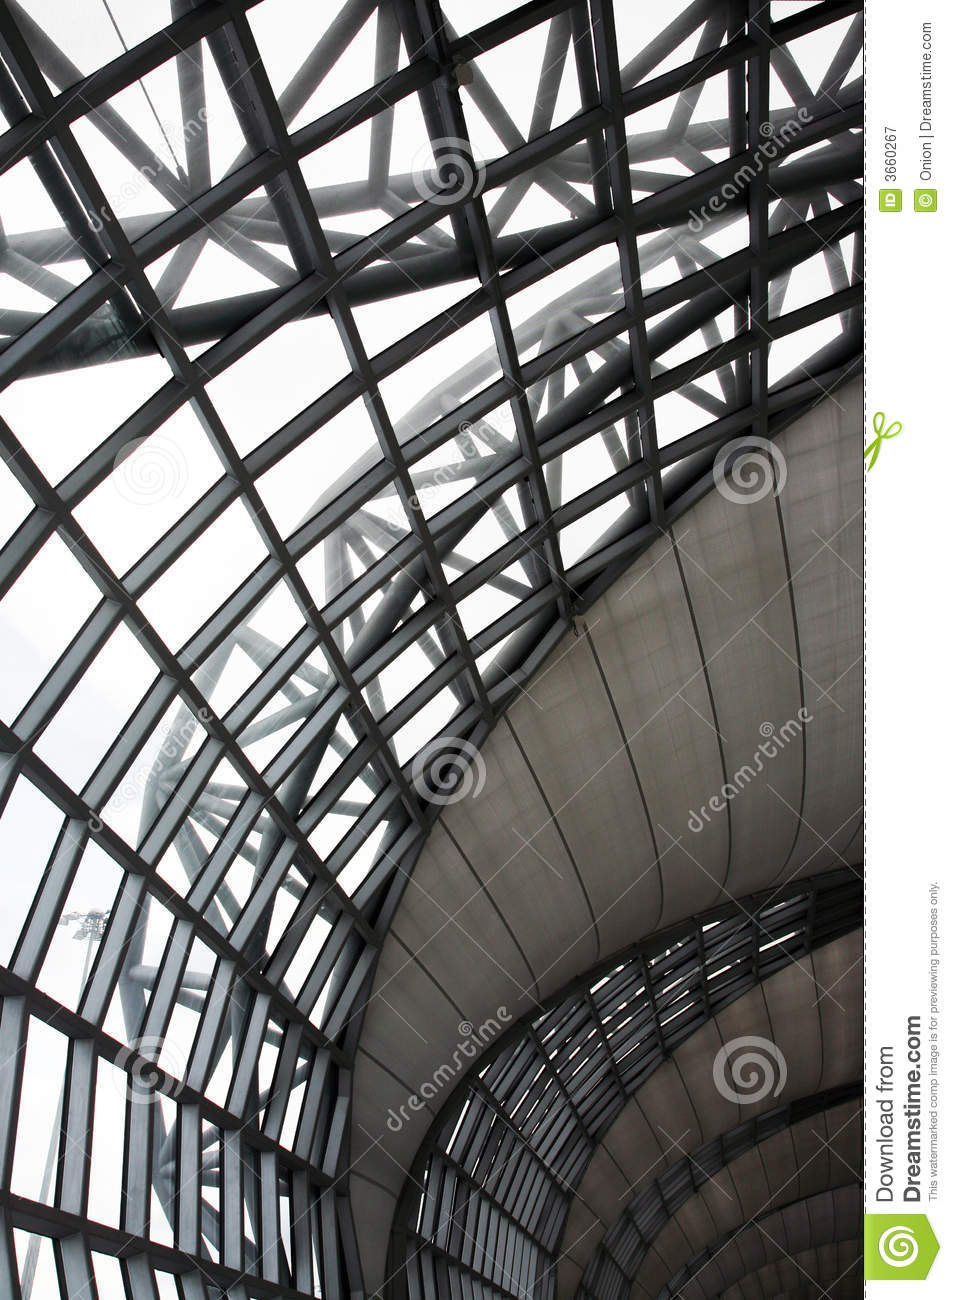 Royalty Free Stock Photography: Metal indoor ceiling